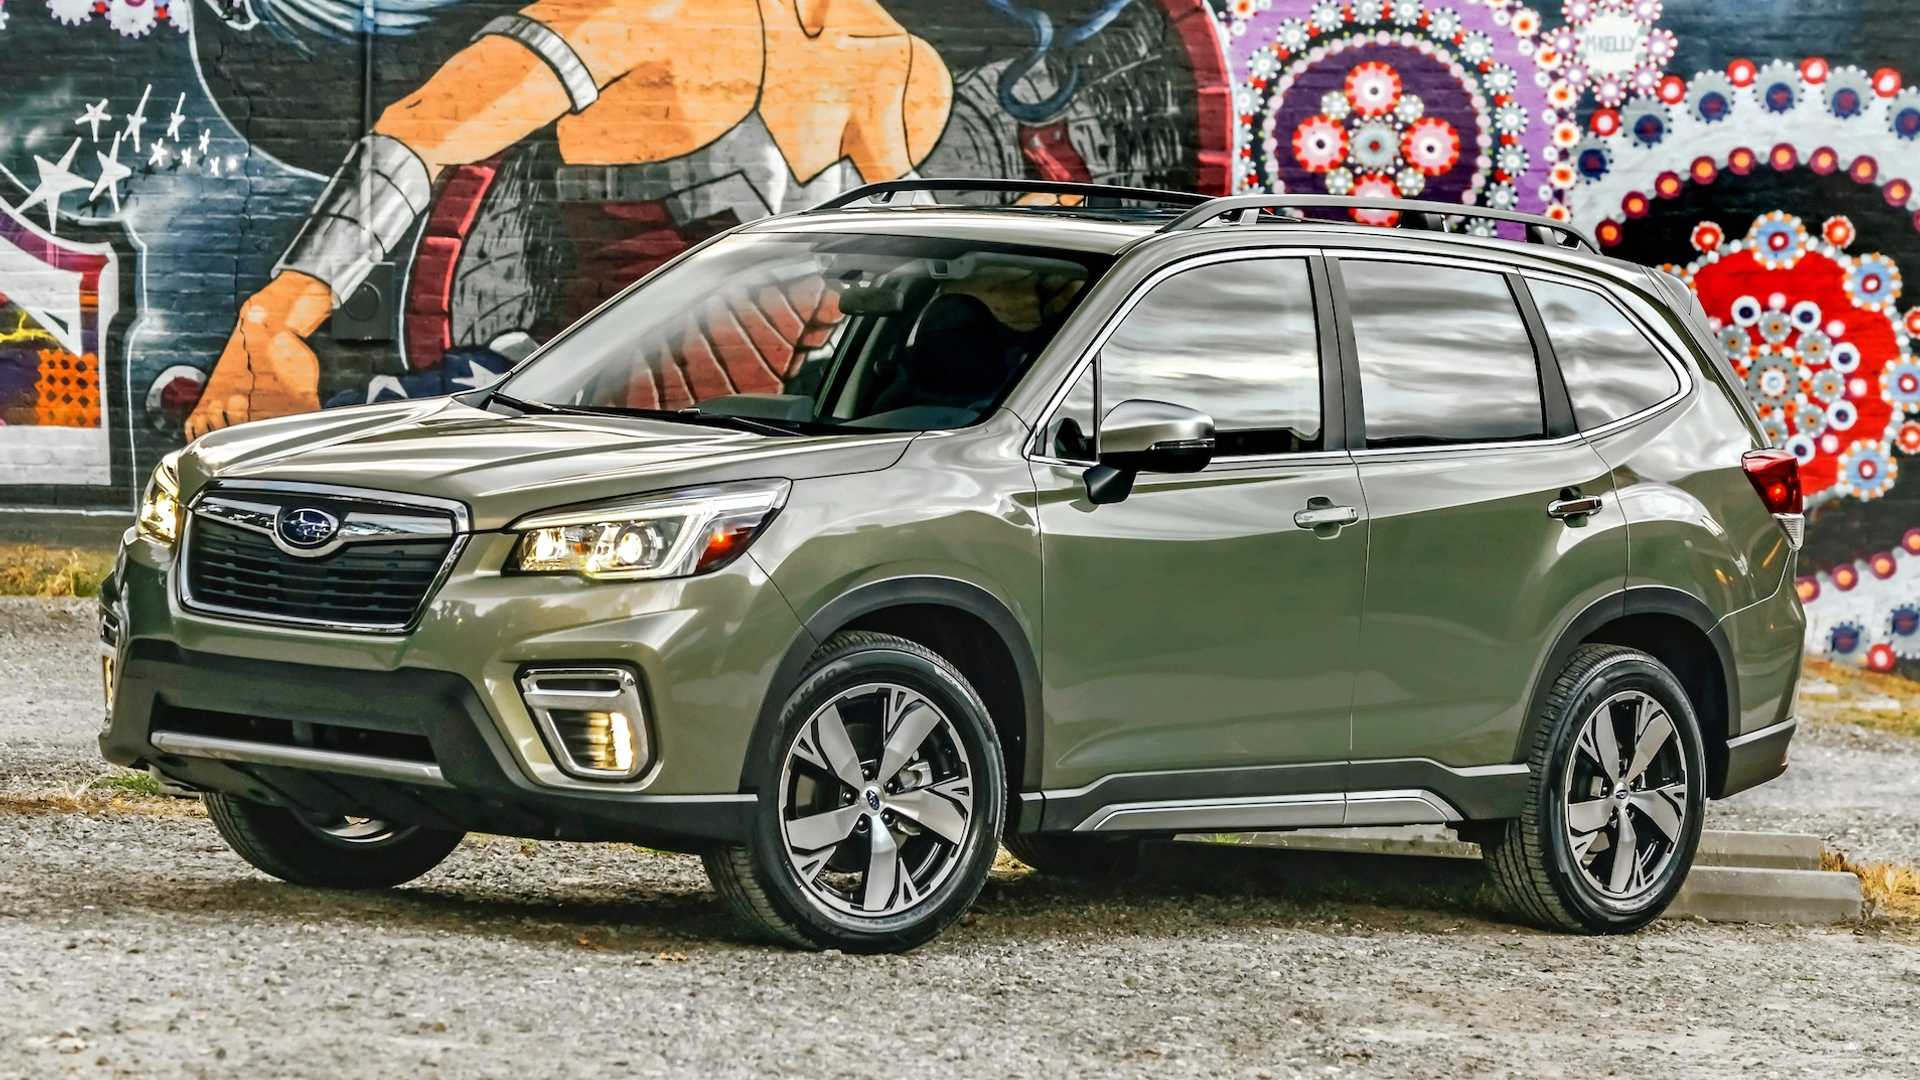 2020 Subaru Forester Spanish